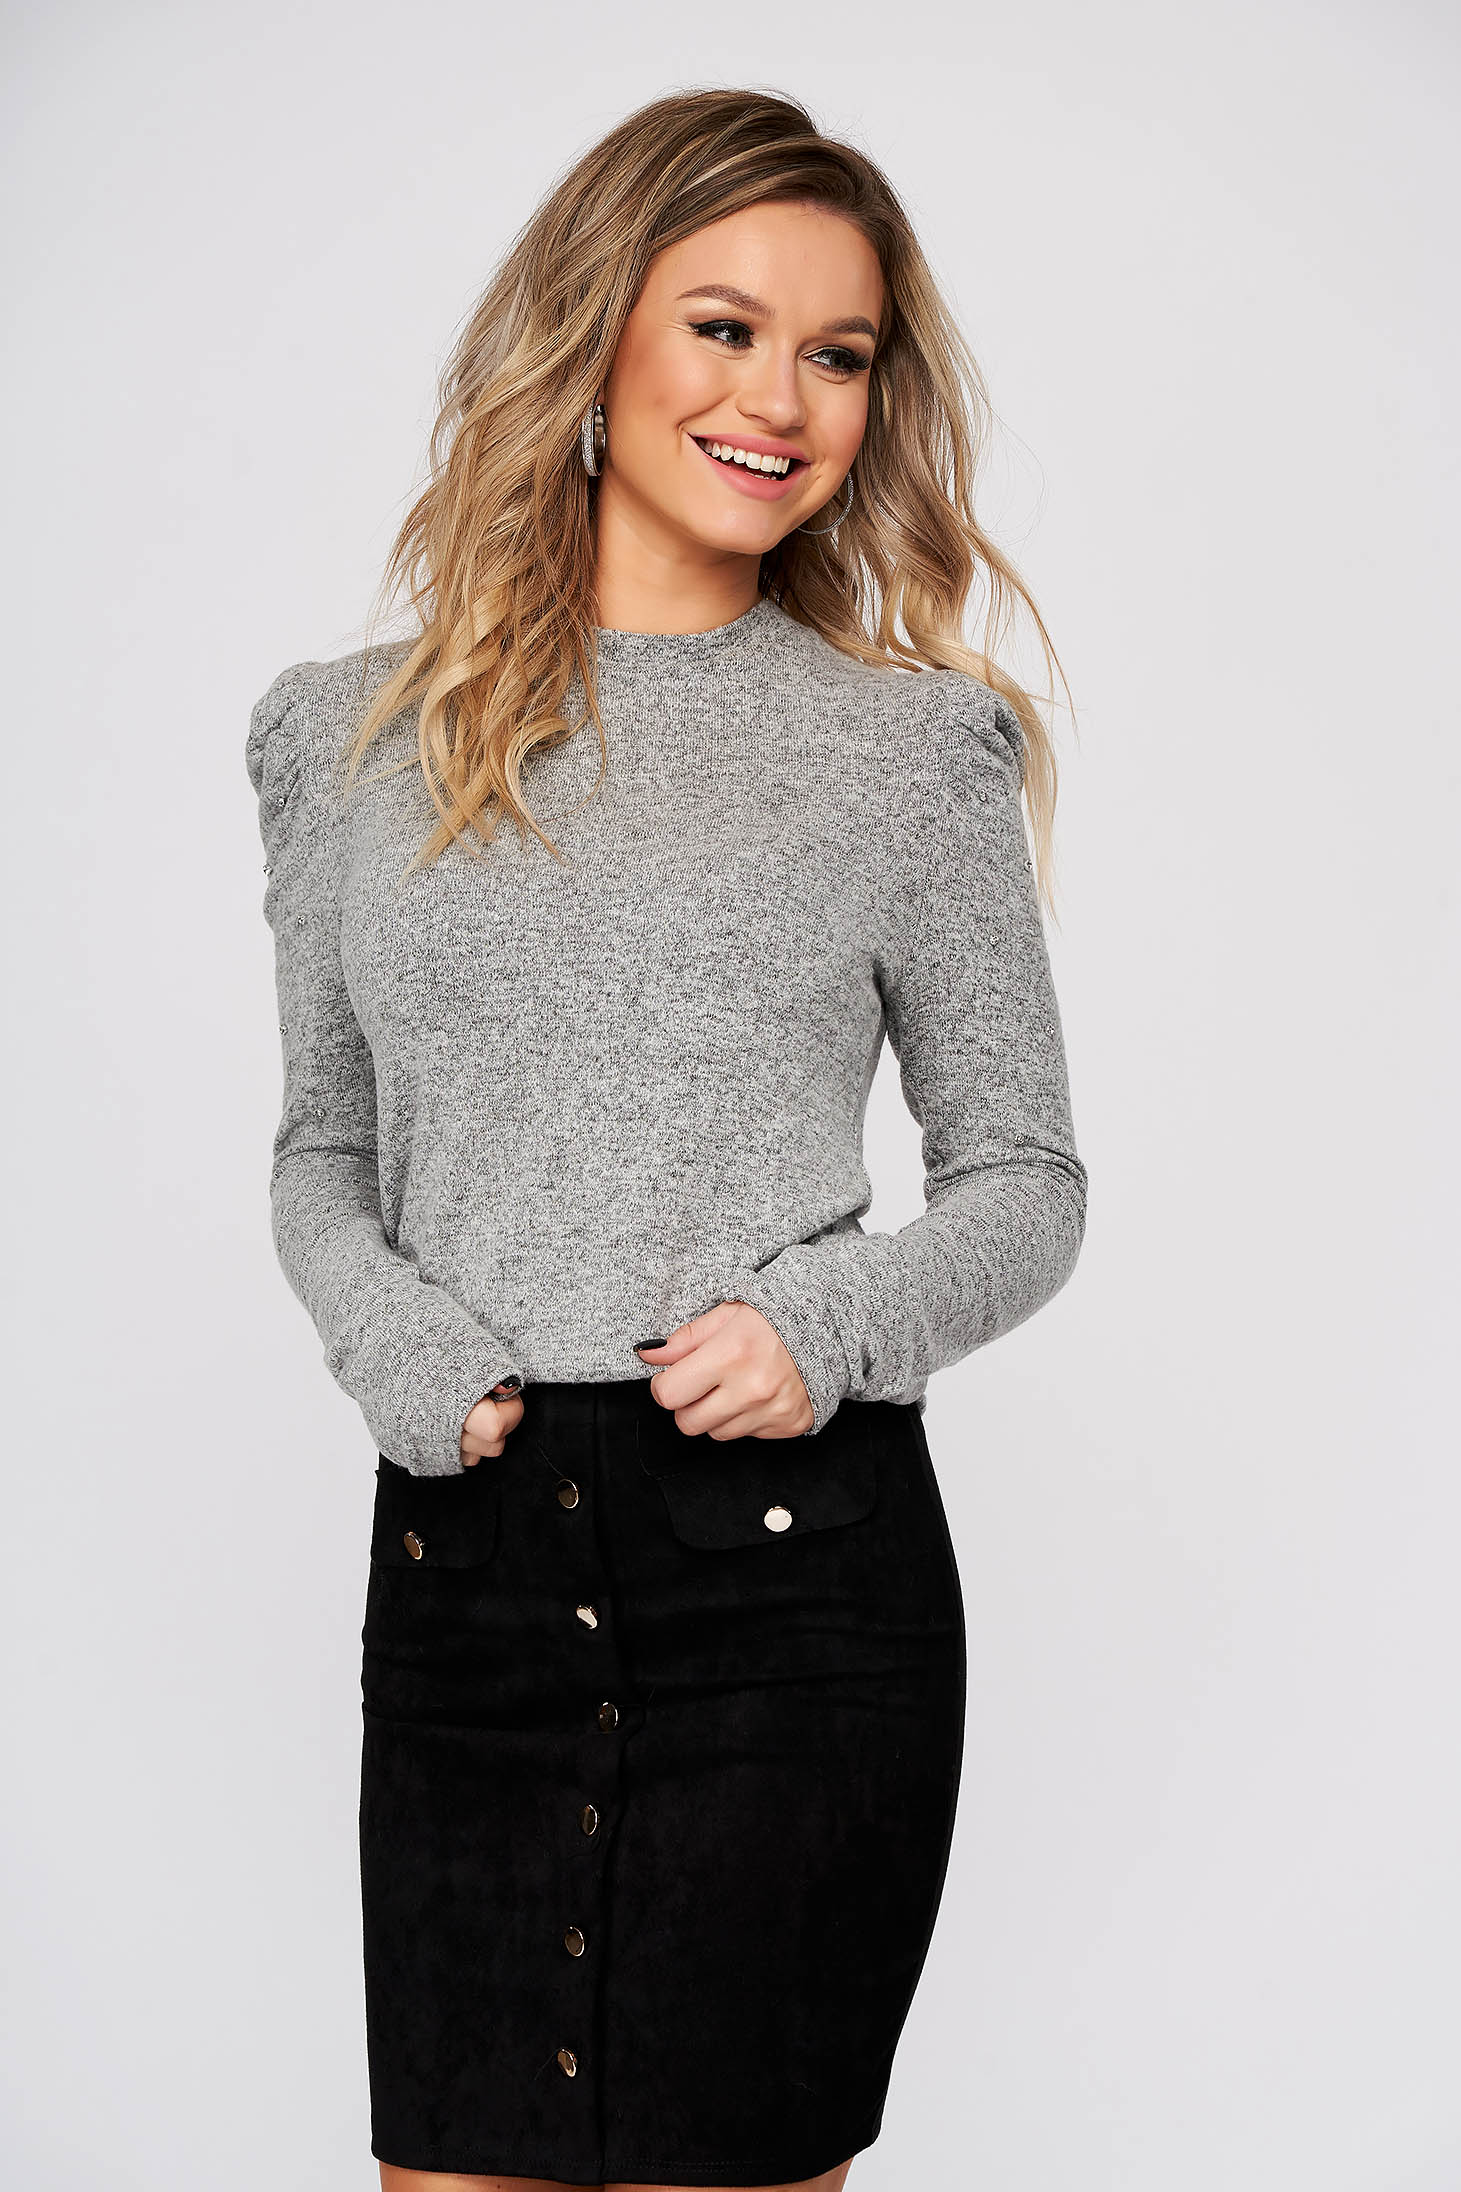 Grey sweater casual high shoulders with crystal embellished details